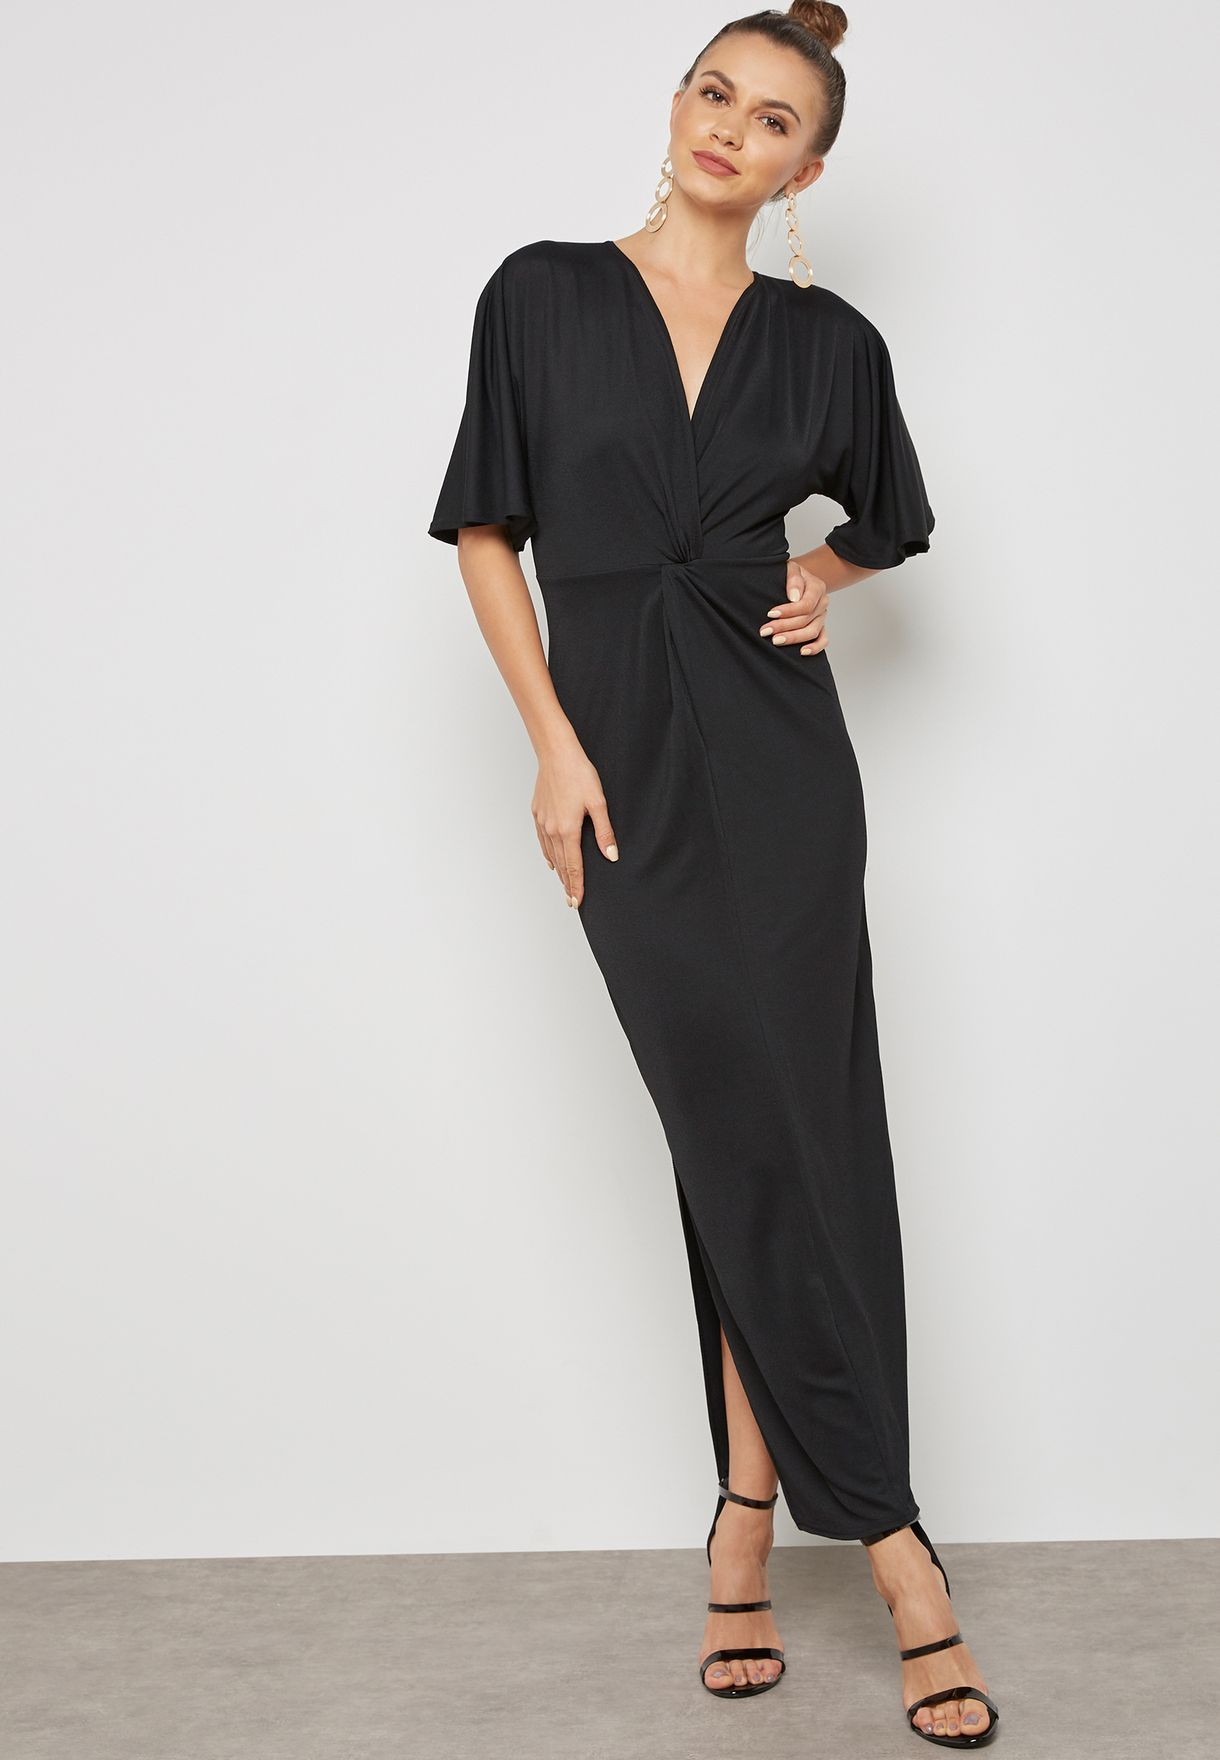 ca4ede2f15d Shop Ella black Twisted Front Maxi Dress PF2063(RM-104) for Women in ...